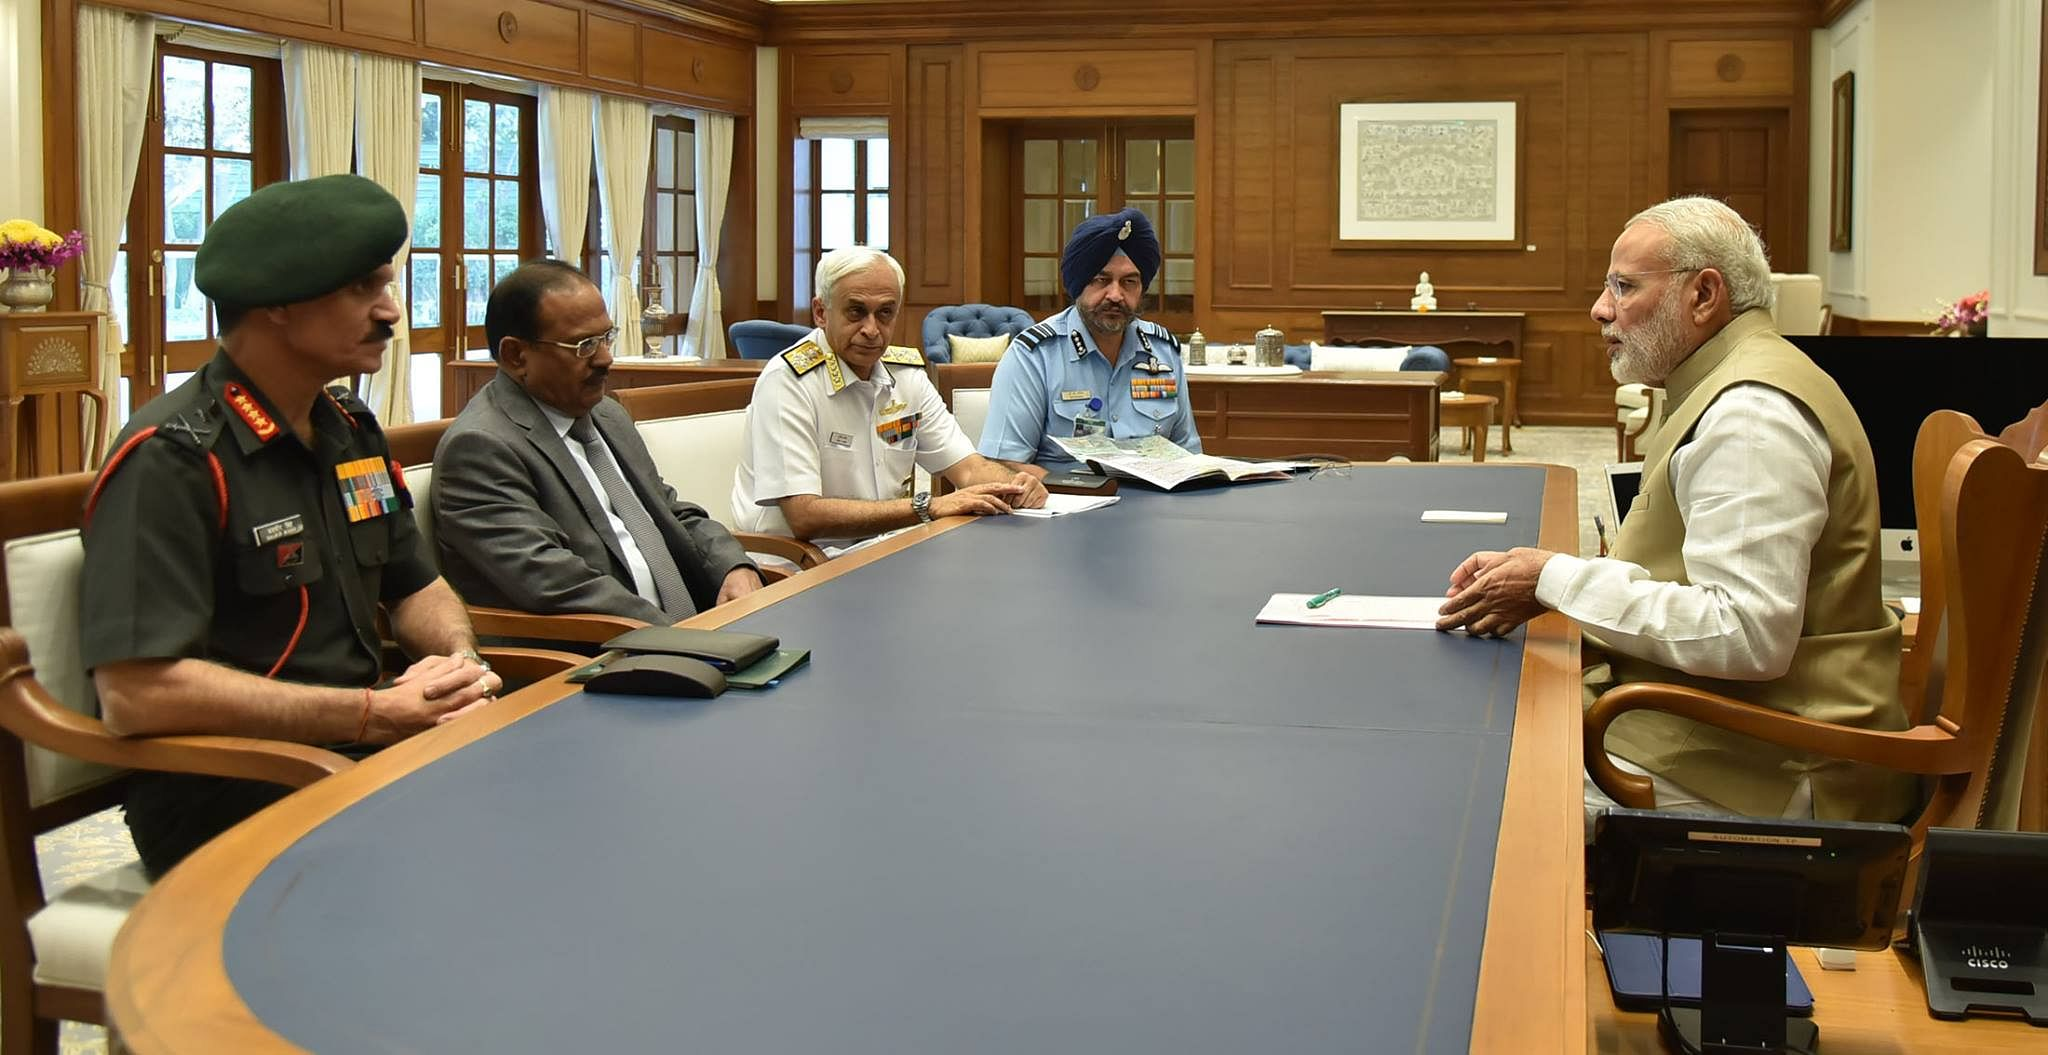 NSA Ajit Doval sitting alongside former Chief of Army Staff, General Dalbir Singh, the Chief of Naval Staff, Admiral Sunil Lanba and the Vice Chief of Air Staff, Air Marshal Birender Singh Dhanoa in a meeting with Prime Minister Narendra Modi (Source: PIB)